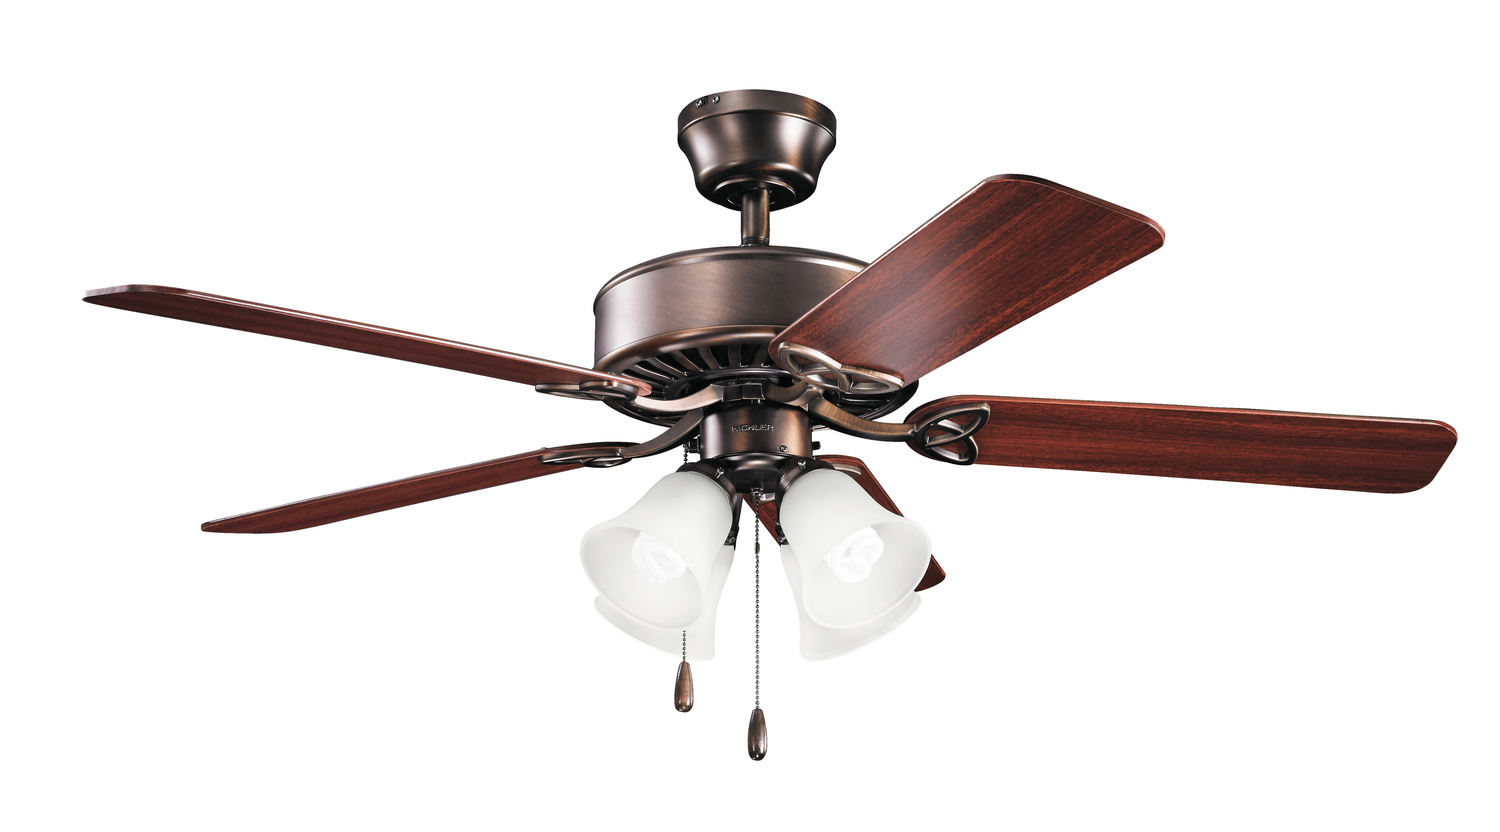 50 inchCeiling Fan from the Renew Premier collection by Kichler 339240OBB